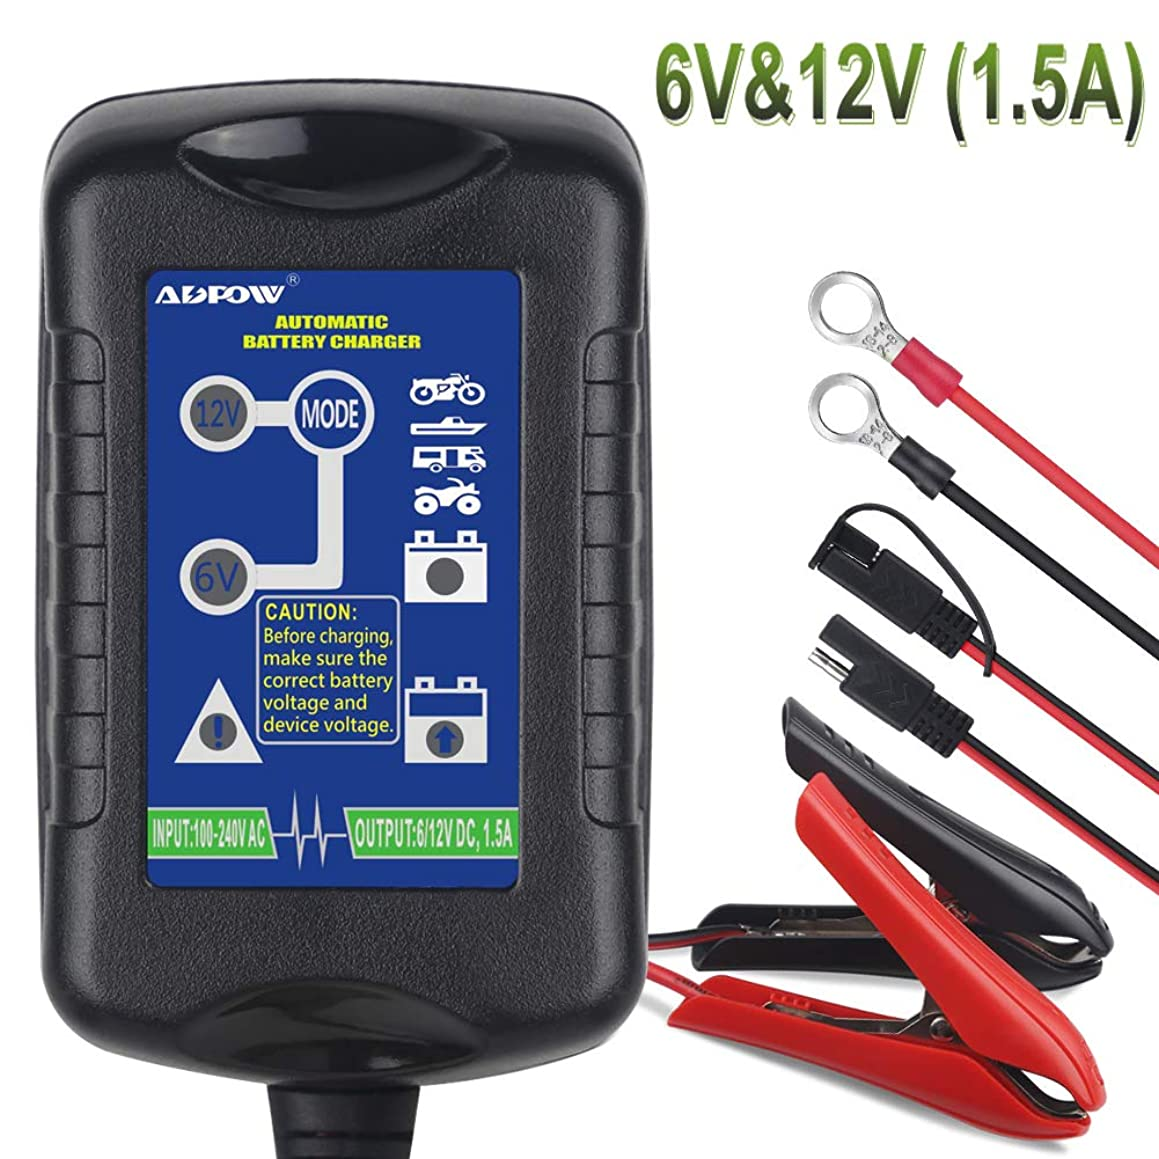 ADPOW Car Battery Charger 6V 12V 1.5A Trickle Battery Charger Automatic Maintainer 6V&12V 4-Step Power Battery Charging for Auto Car Motorcycle Lawn Mower SLA ATV AGM GEL CELL Lead Acid Batteries